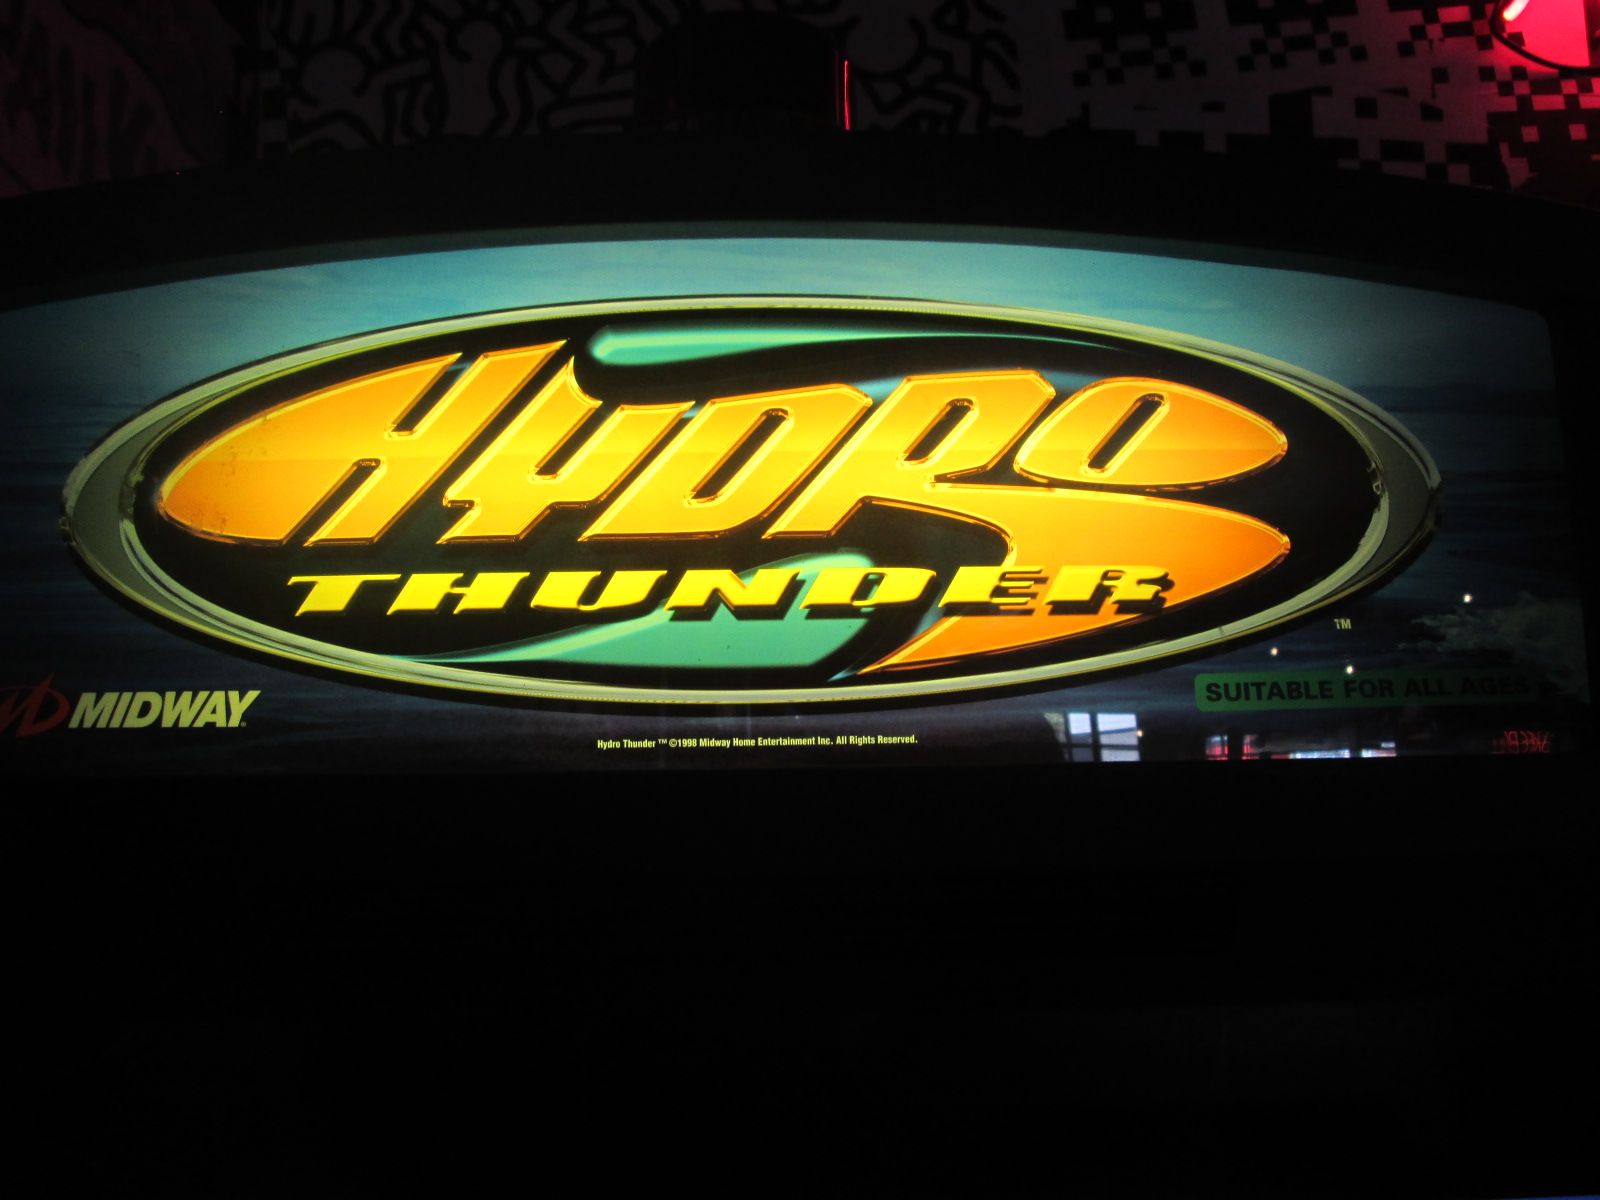 ed1475: Hydro Thunder: Thunder Park (Arcade) 0:02:13.03 points on 2016-09-18 15:48:02